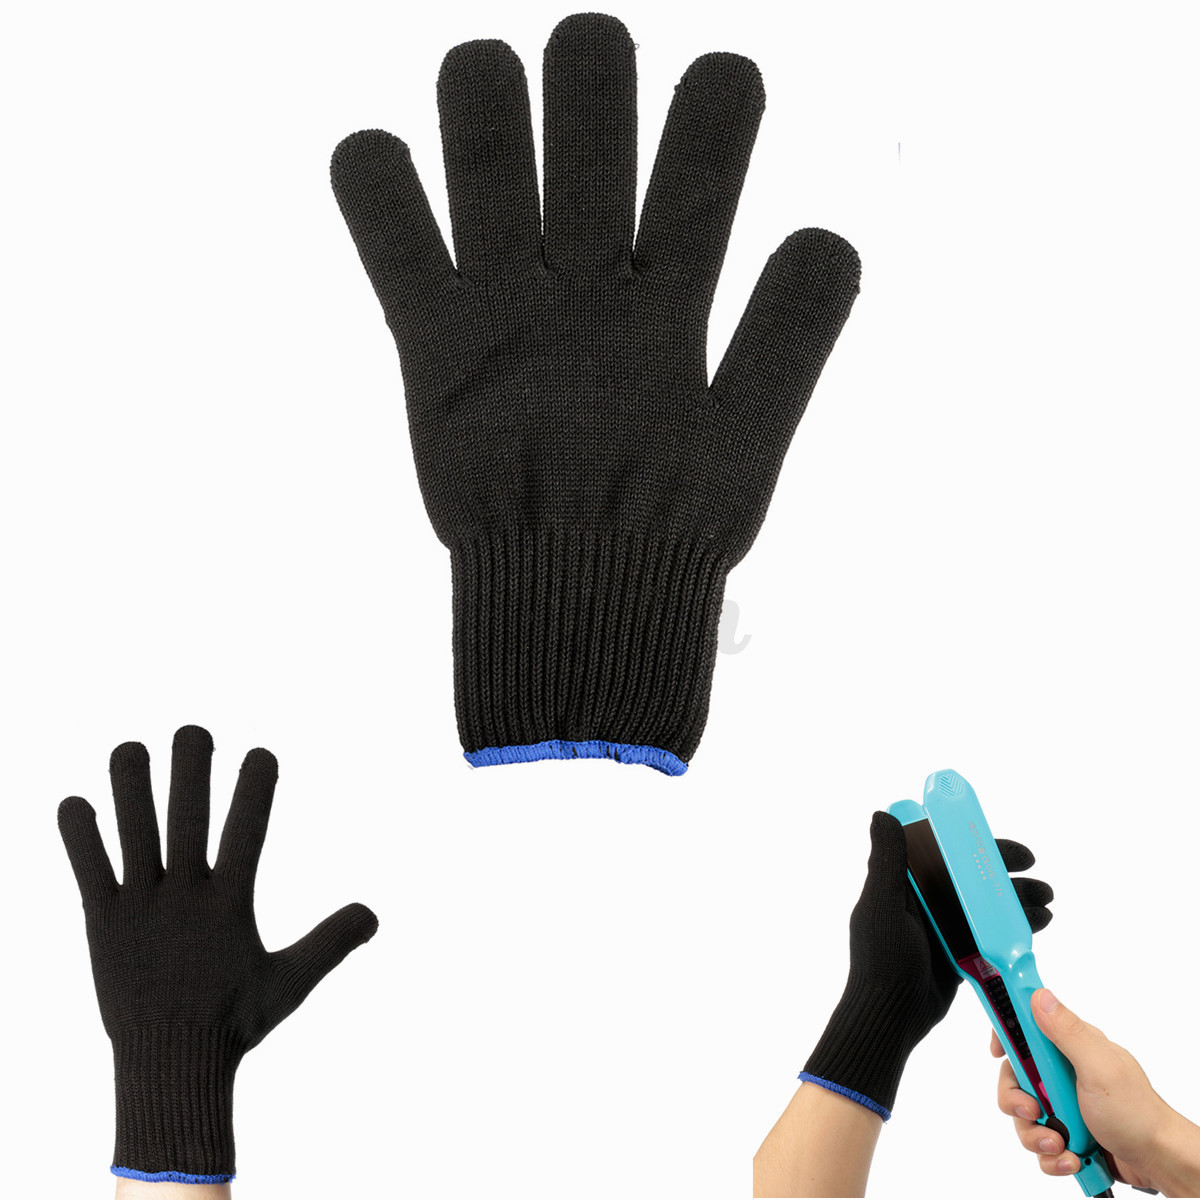 2 x Heat Resistant Glove Hair Styling Tool For Curling